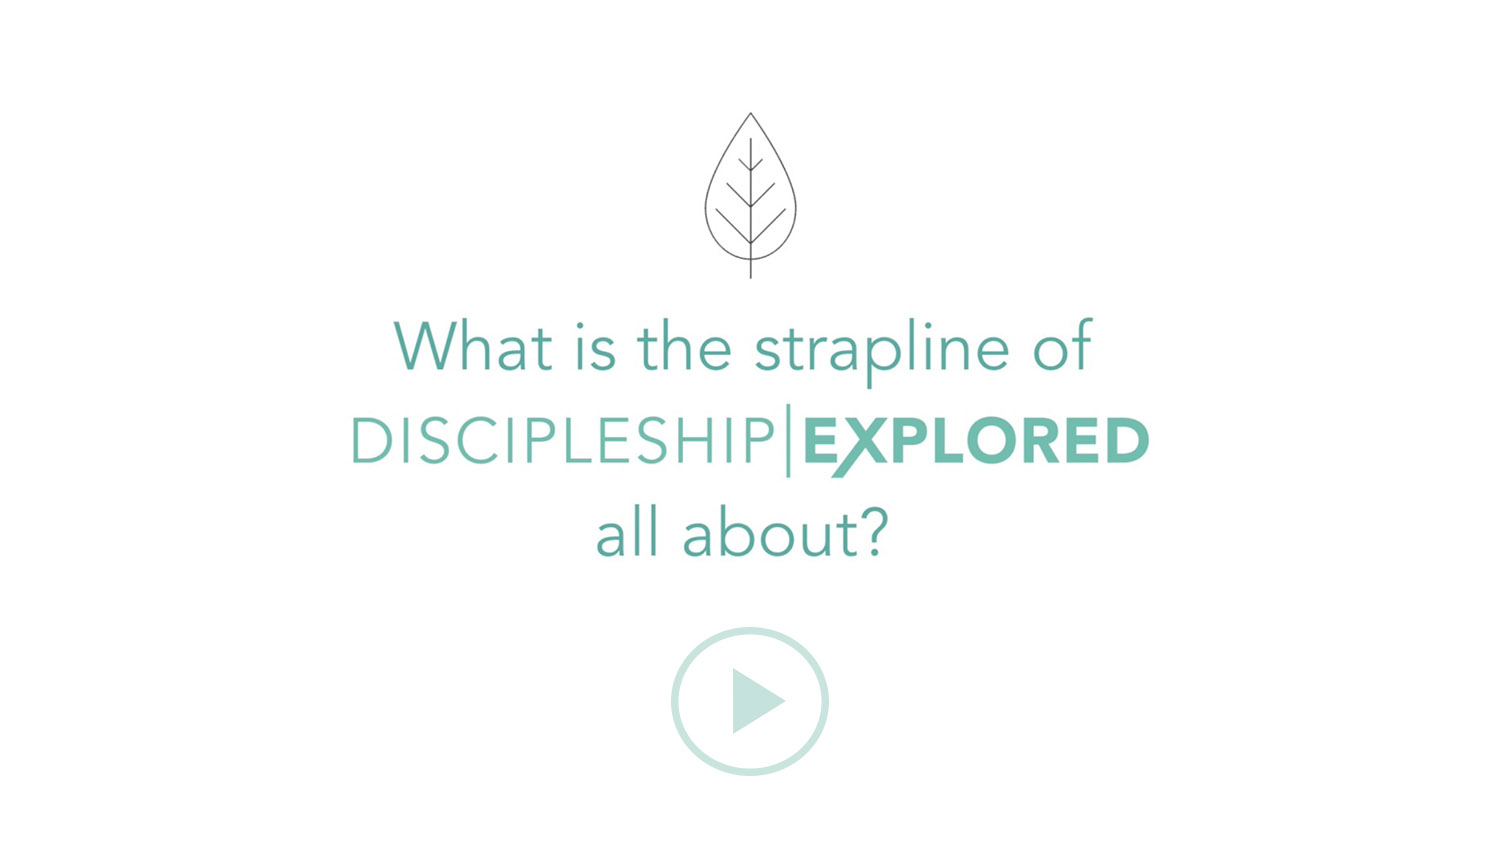 Question 4*What is the strapline of Discipleship Explored all about?